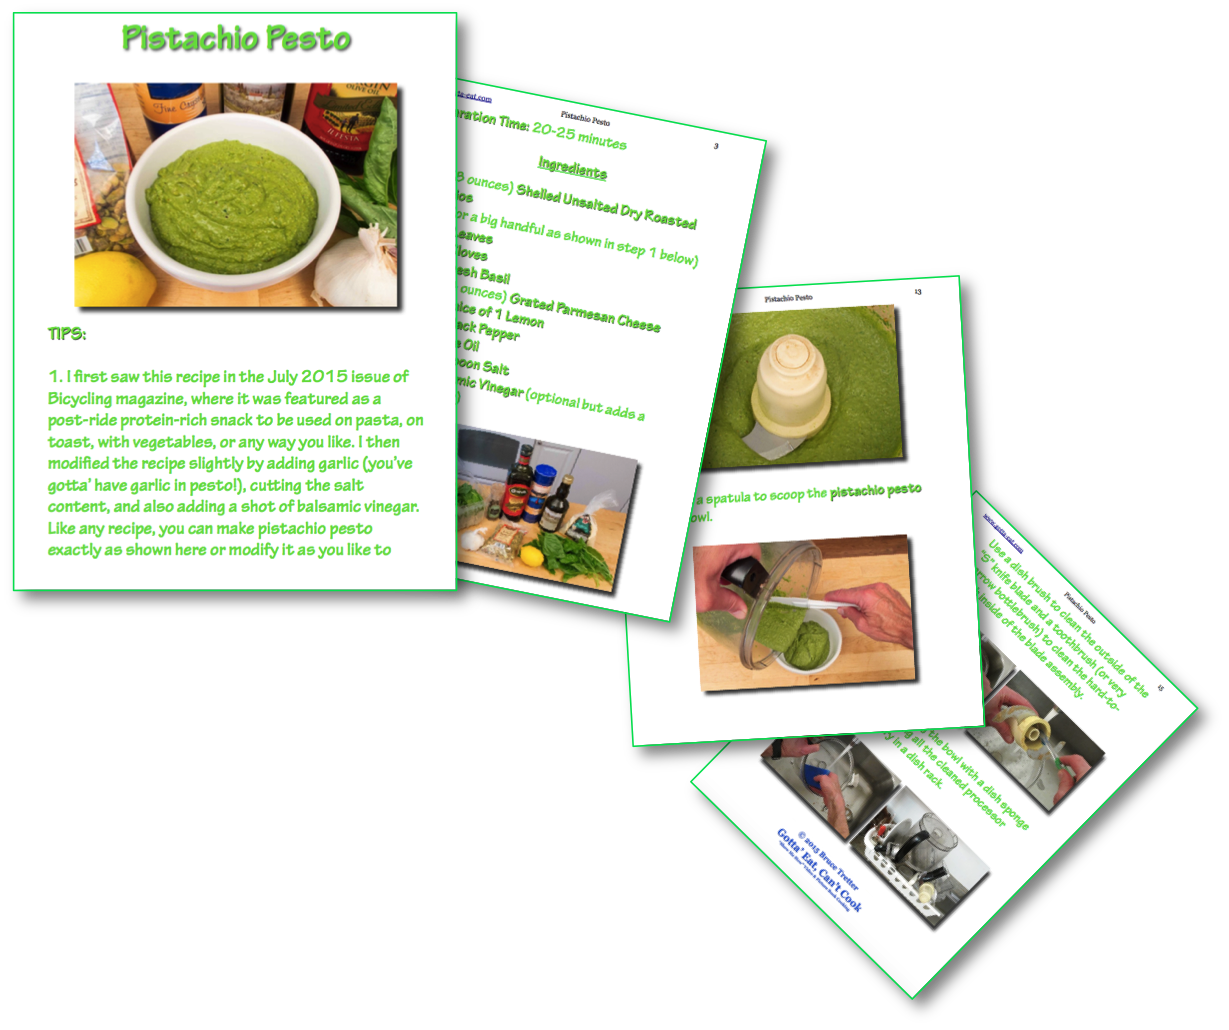 Pistachio Pesto Picture Book Recipe